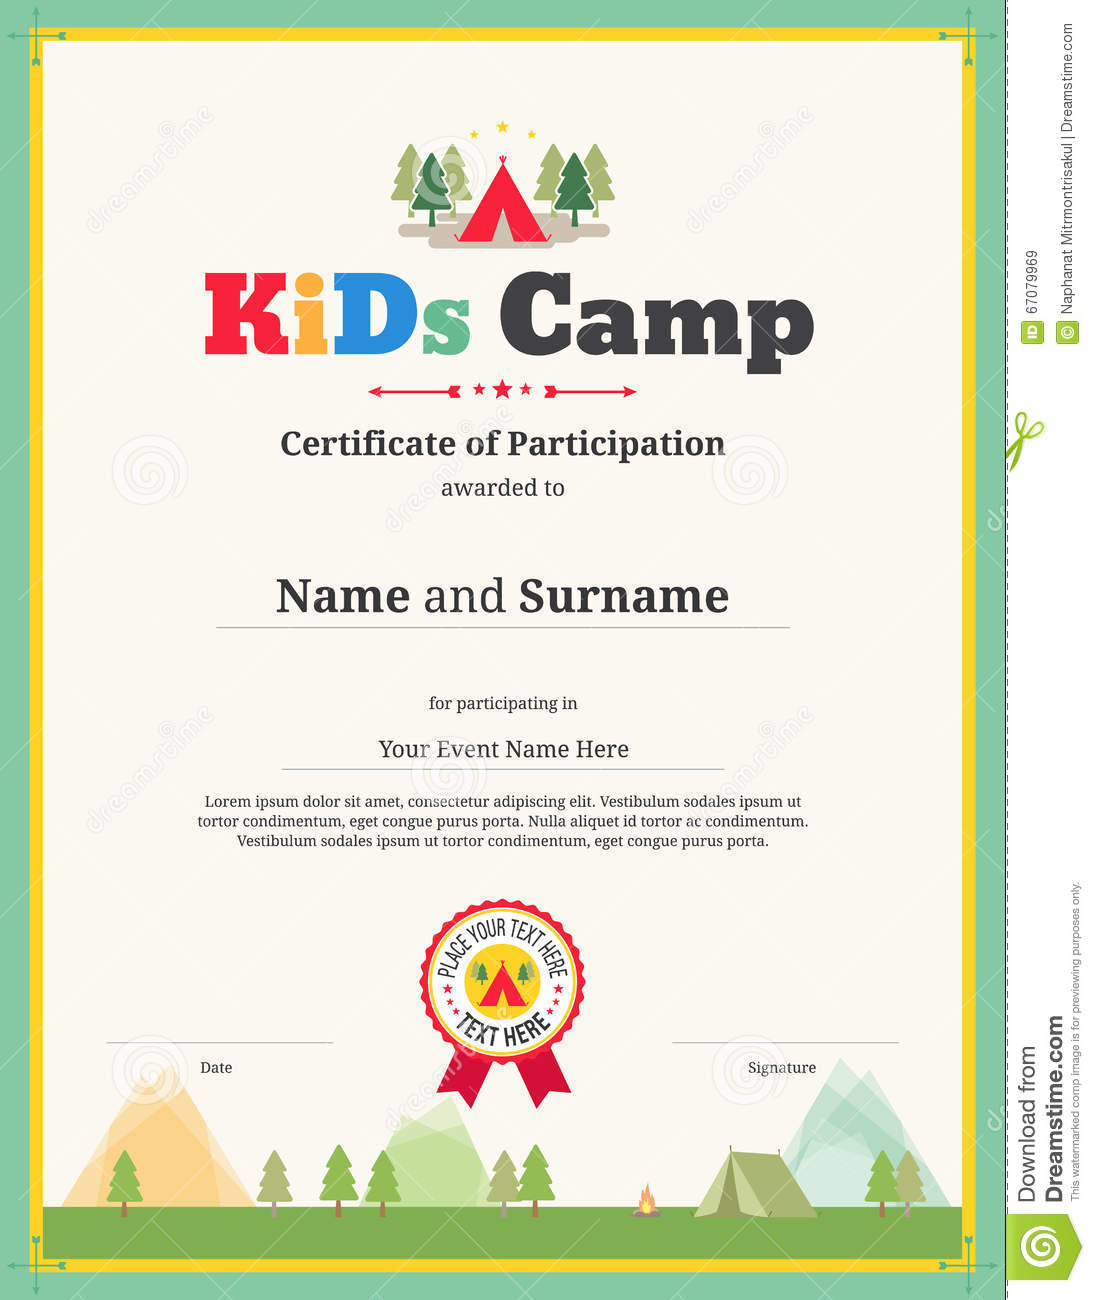 Kids certificate template in vector for camping participation kids certificate template in vector for camping participation frame layout yadclub